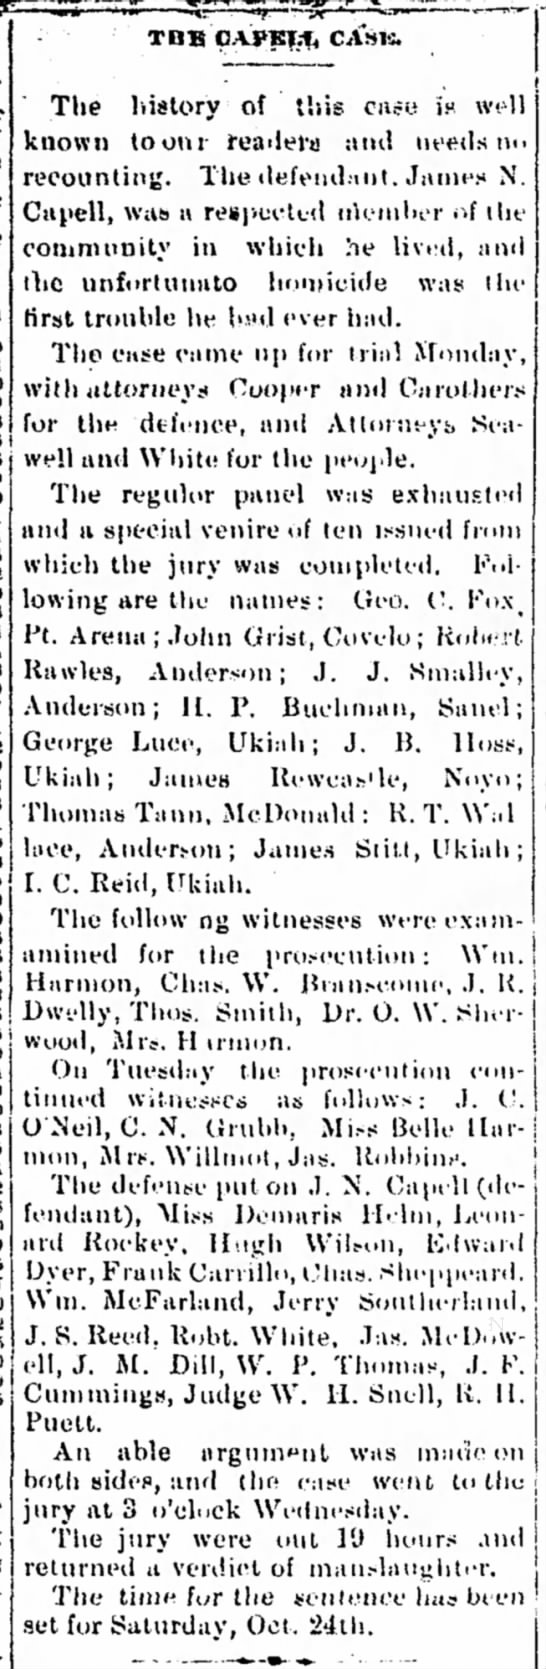 1891 - JR Dwelly witness for prosecution in Capell murder case -